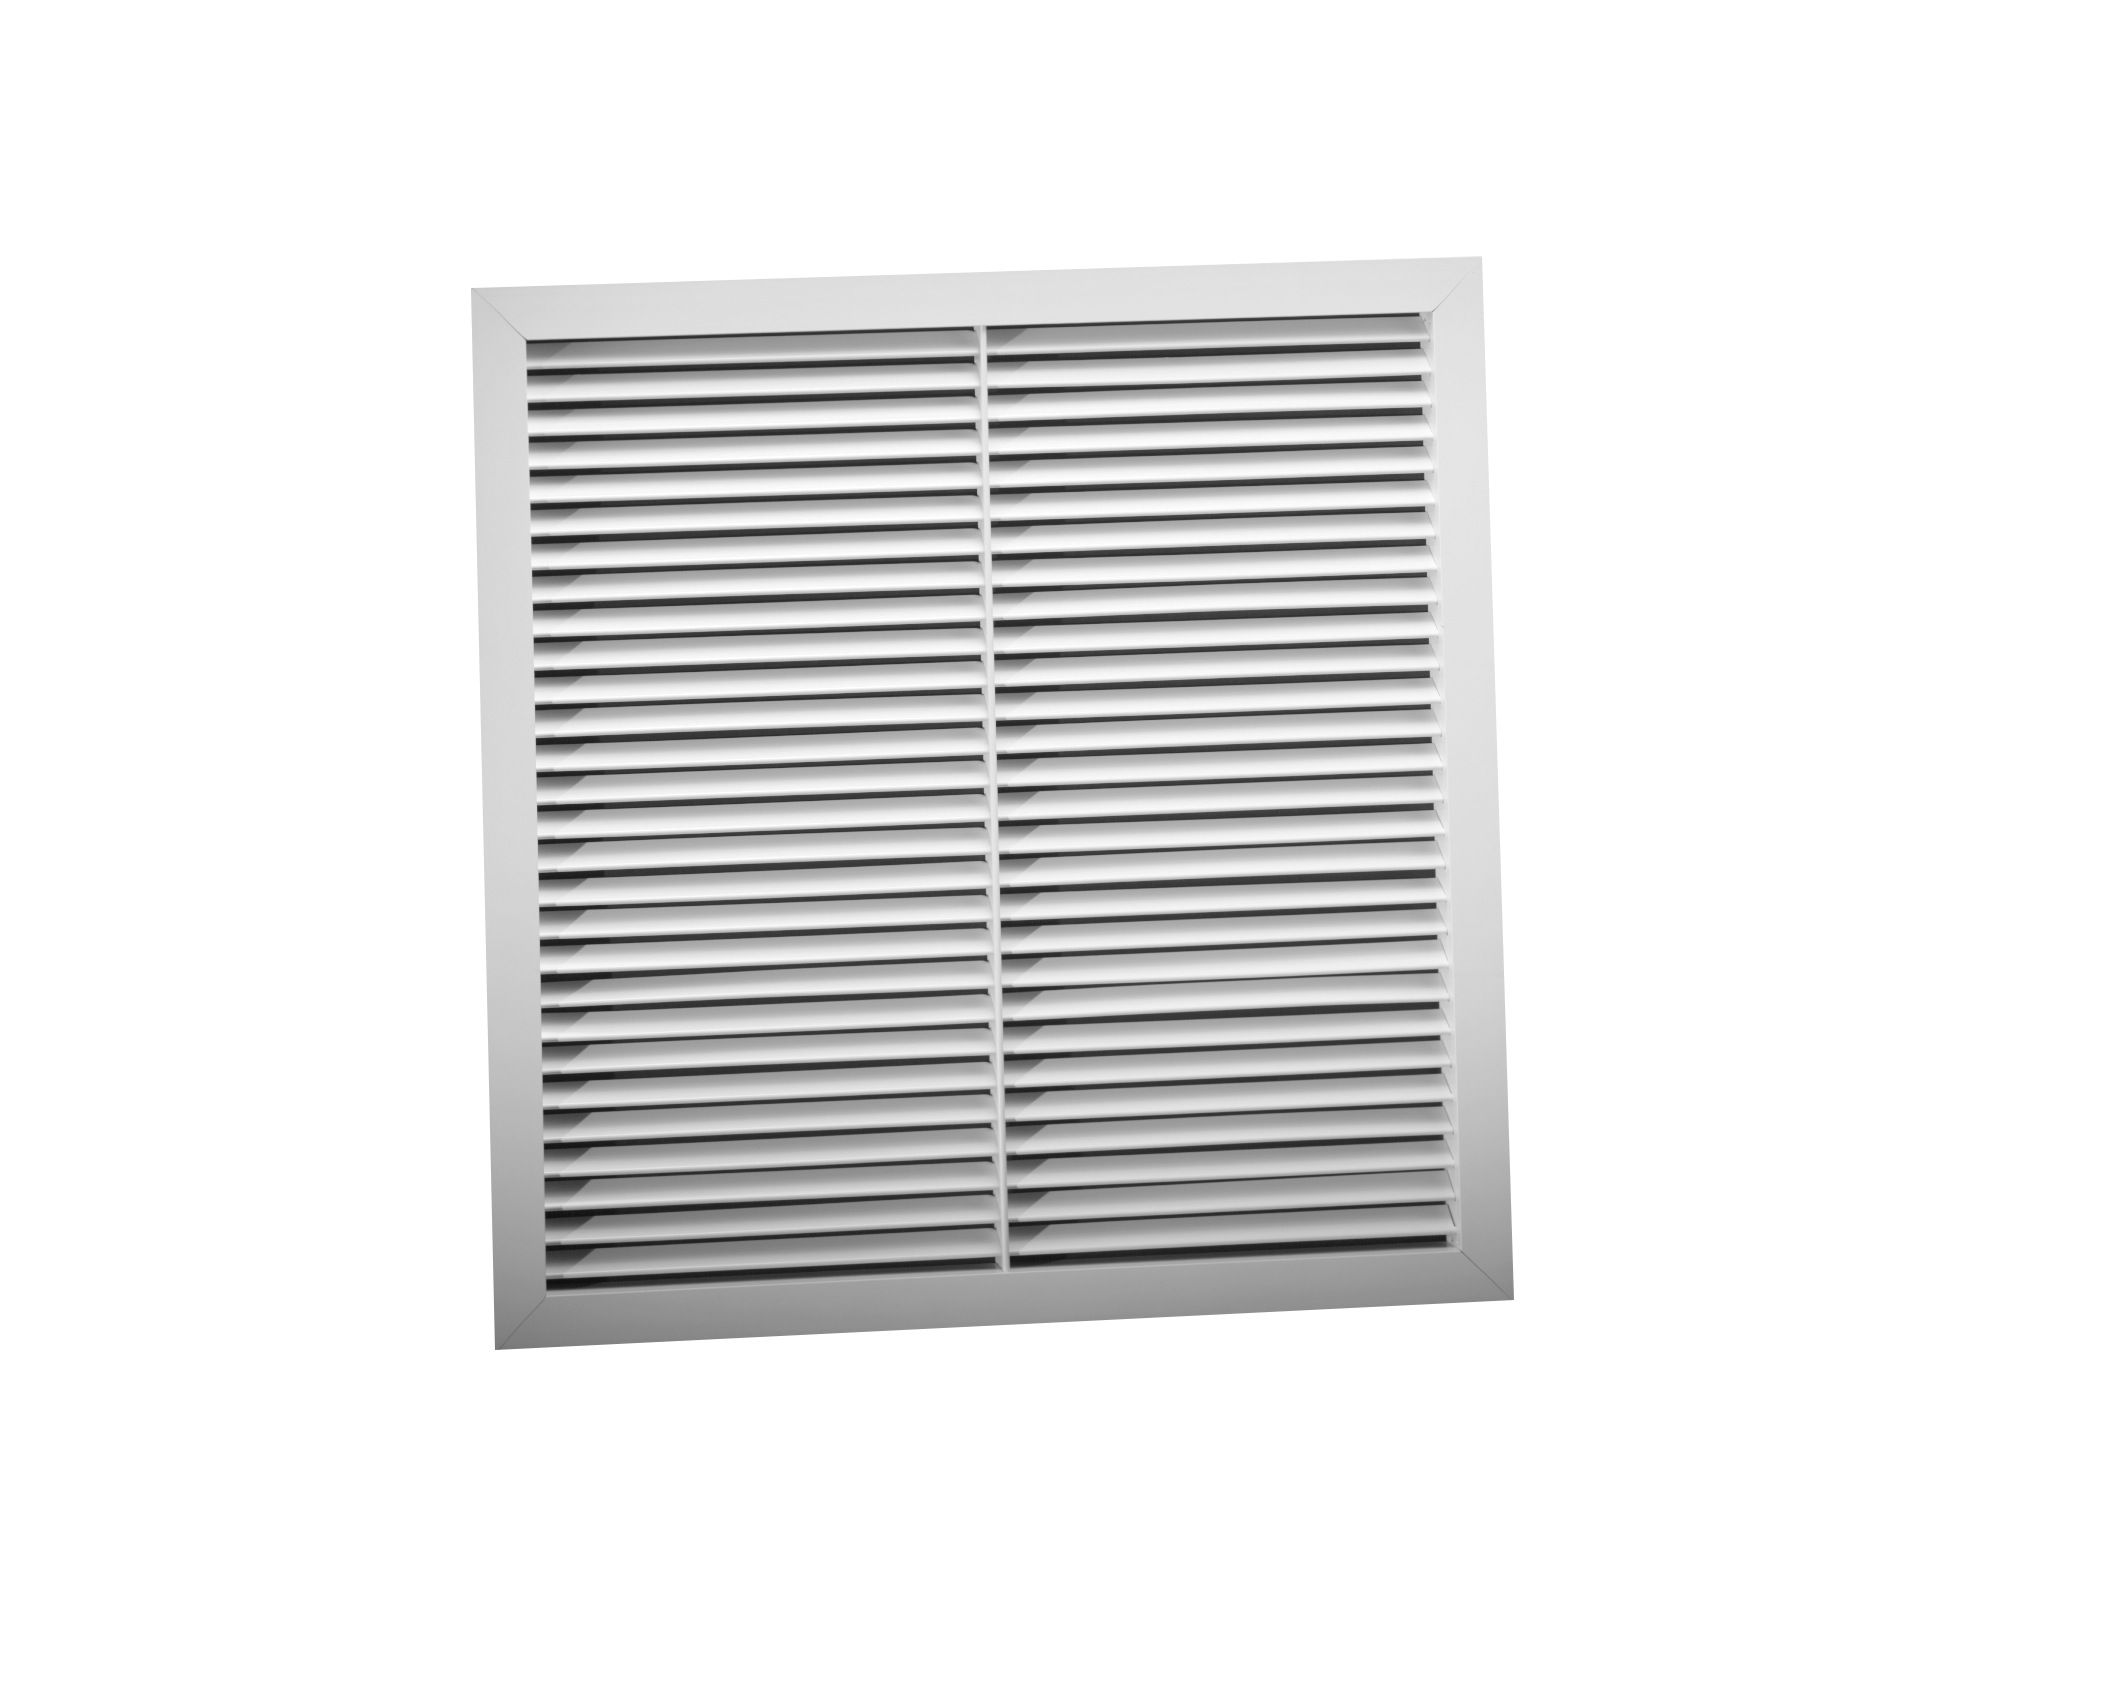 etb280 aluminum fixed bar style return grille airmate. Black Bedroom Furniture Sets. Home Design Ideas